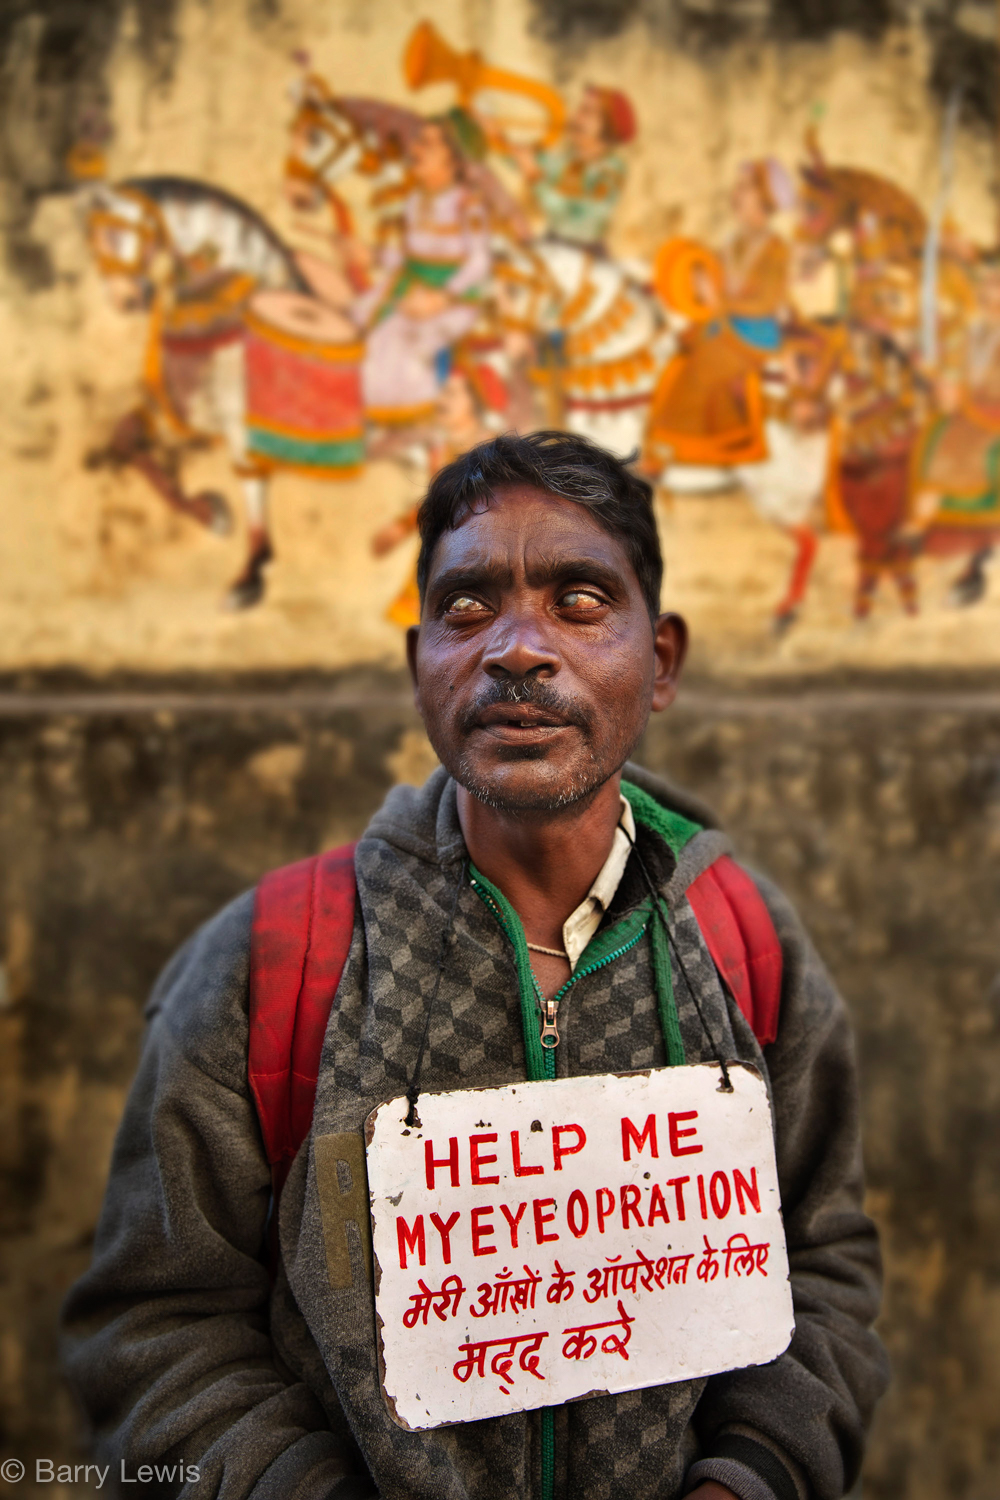 Blind man, raising money for an operation, Udaipur, India, 2018